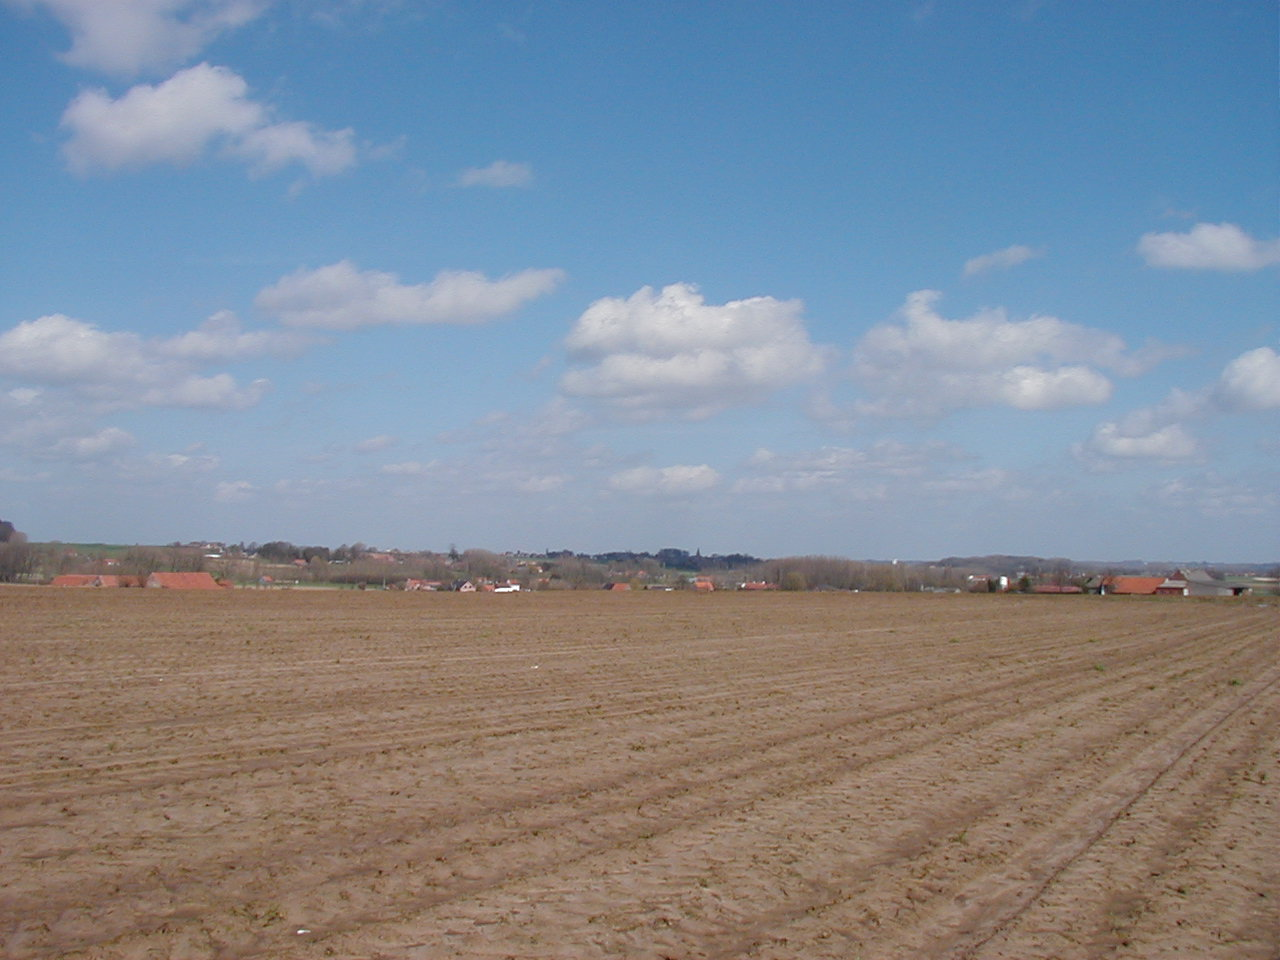 Looking from the Boser Couter towards the Heights of Huysse in the middle distance.